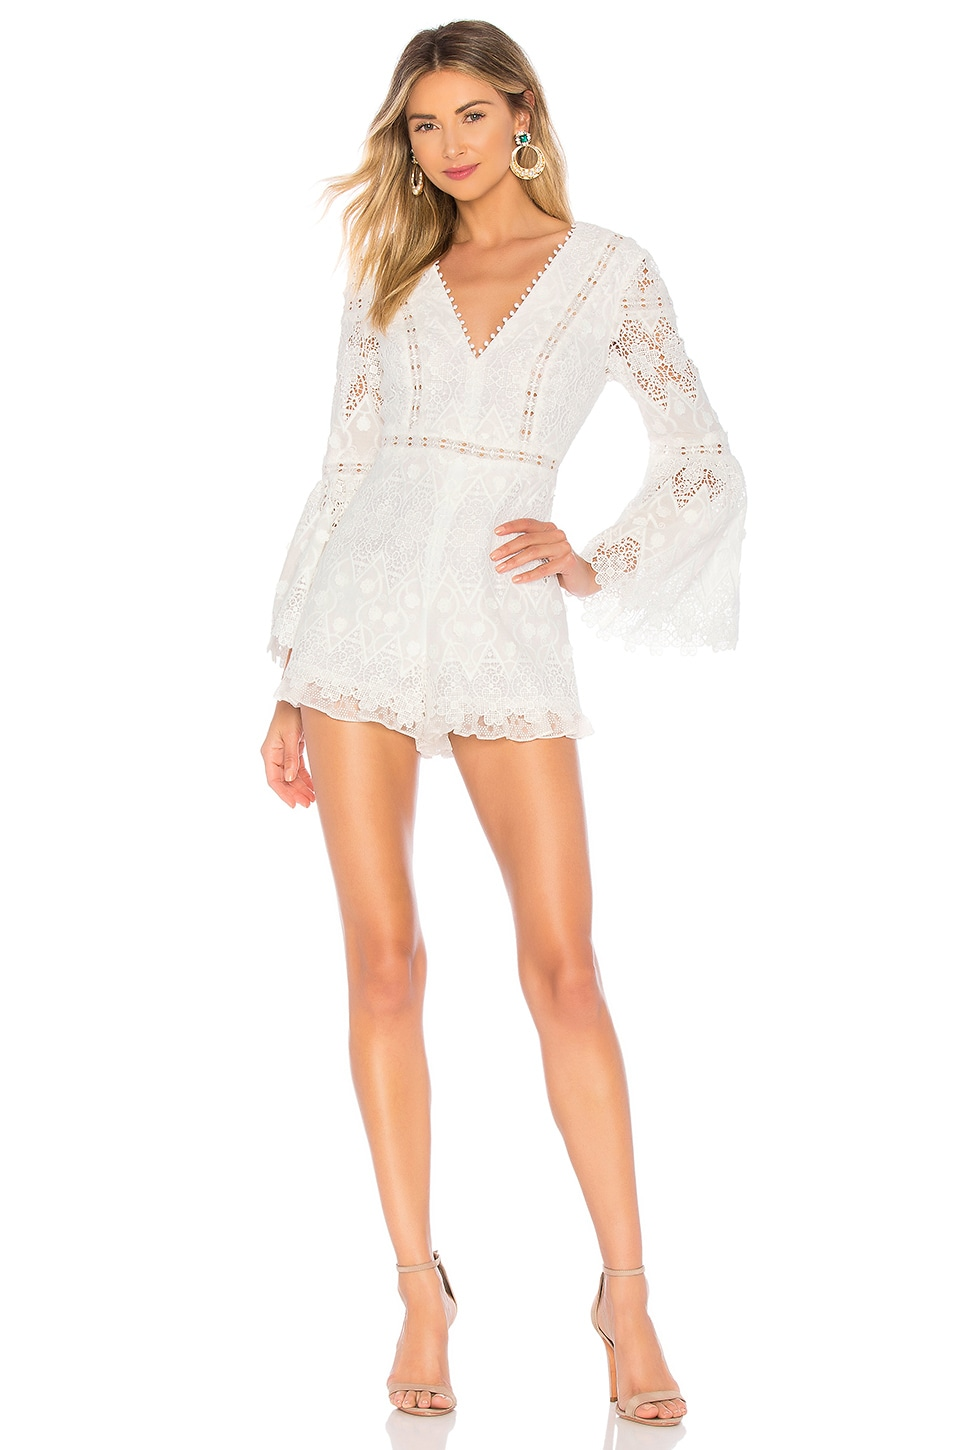 f4683b5f298 Alexis Romper - Buy Best Alexis Romper from Fashion Influencers ...